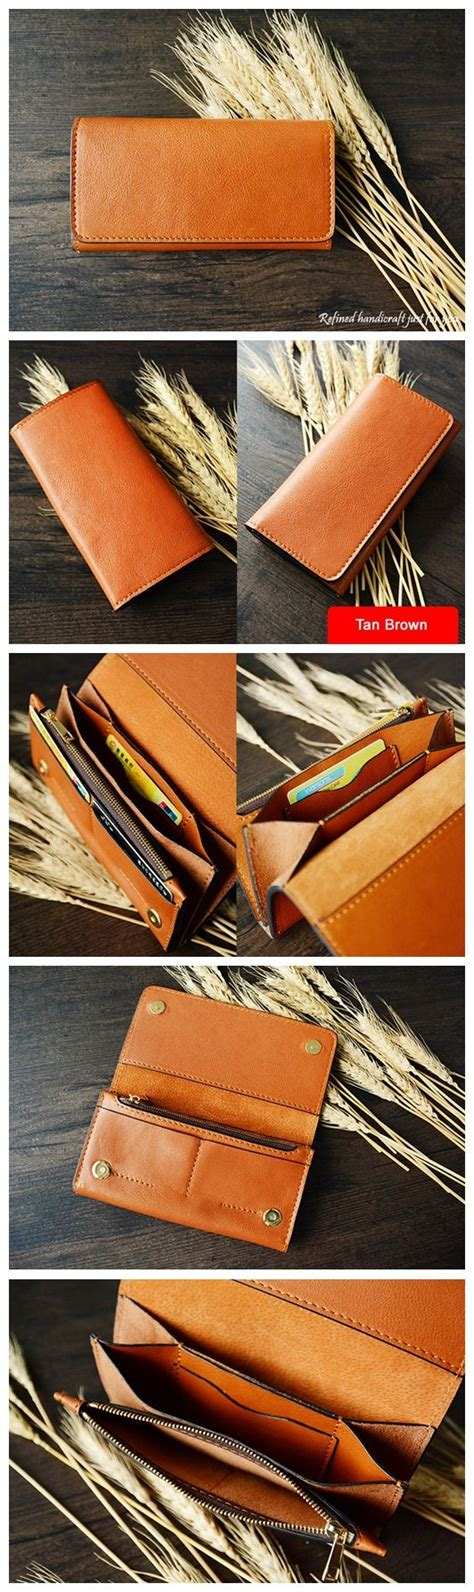 Leather Card Holder Handmade 17 best ideas about leather wallets on leather